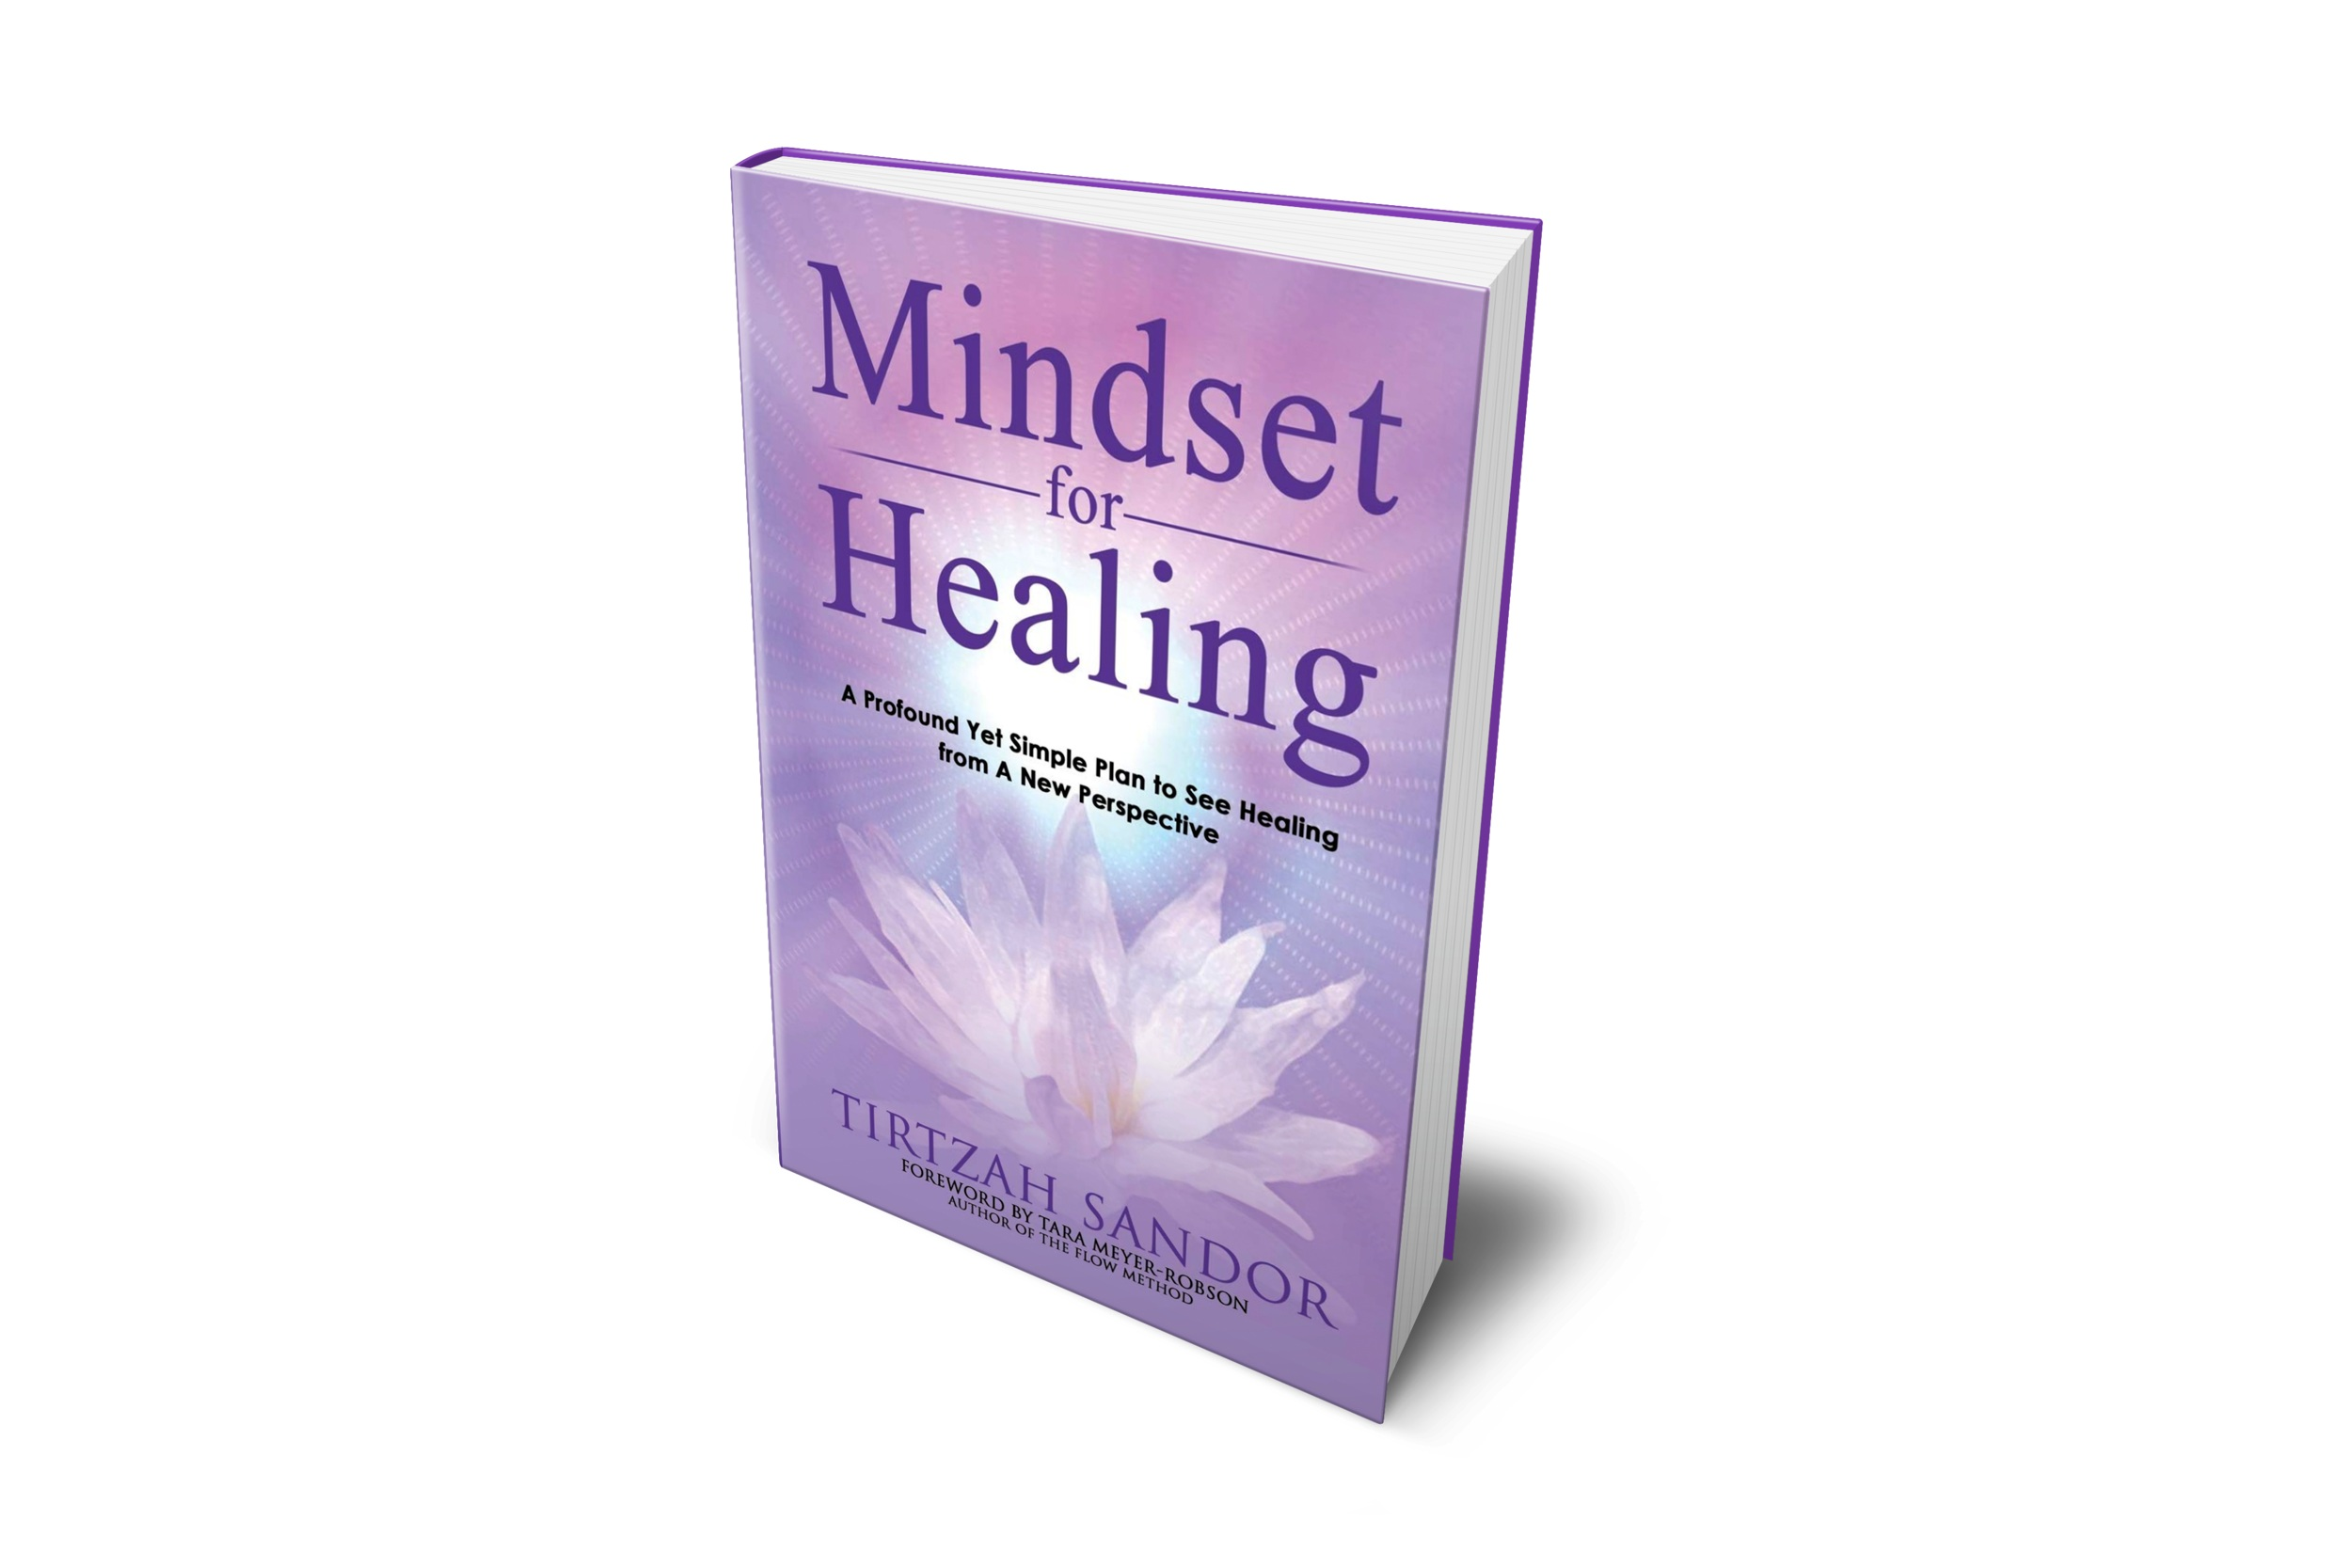 Mindset for Healing - A Profound Yet Simple Plan to See Healing from A New Perspective(Click on the book to order a paperback copy or e-book through Amazon.com. or contact me to purchase a paperback copy.)